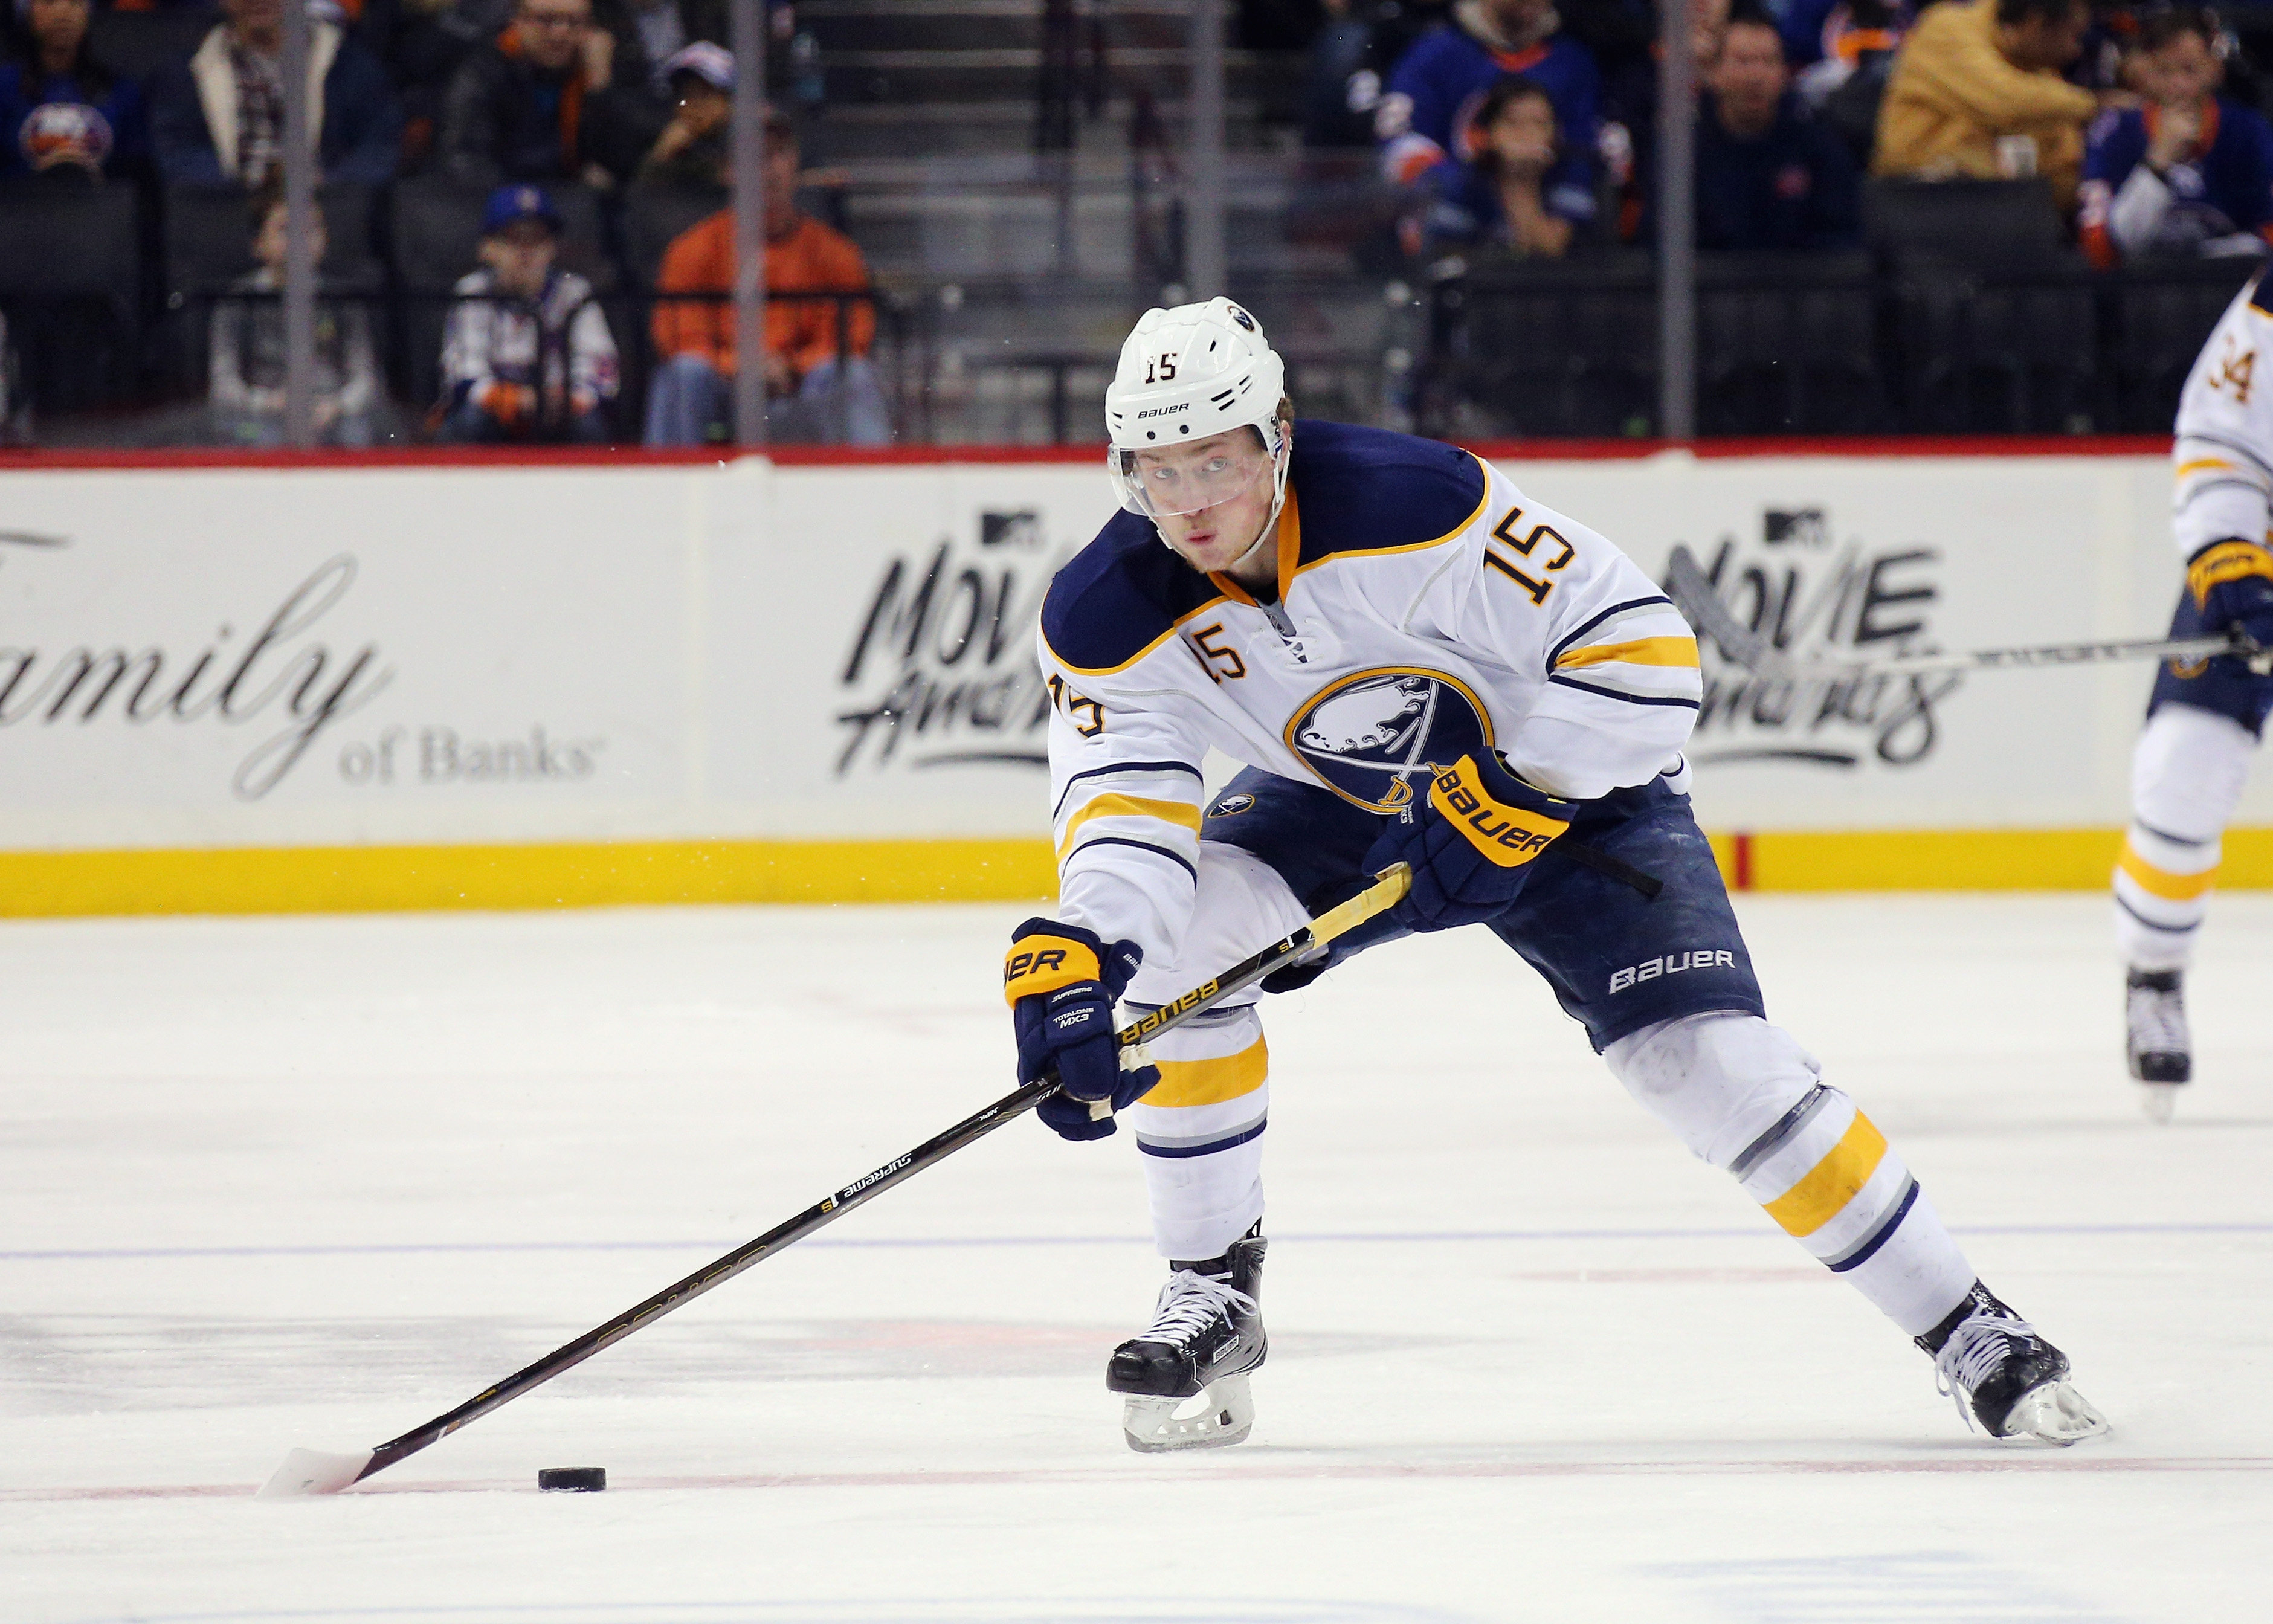 Jack Eichel will make his season debut Tuesday in Ottawa. (Getty Images)